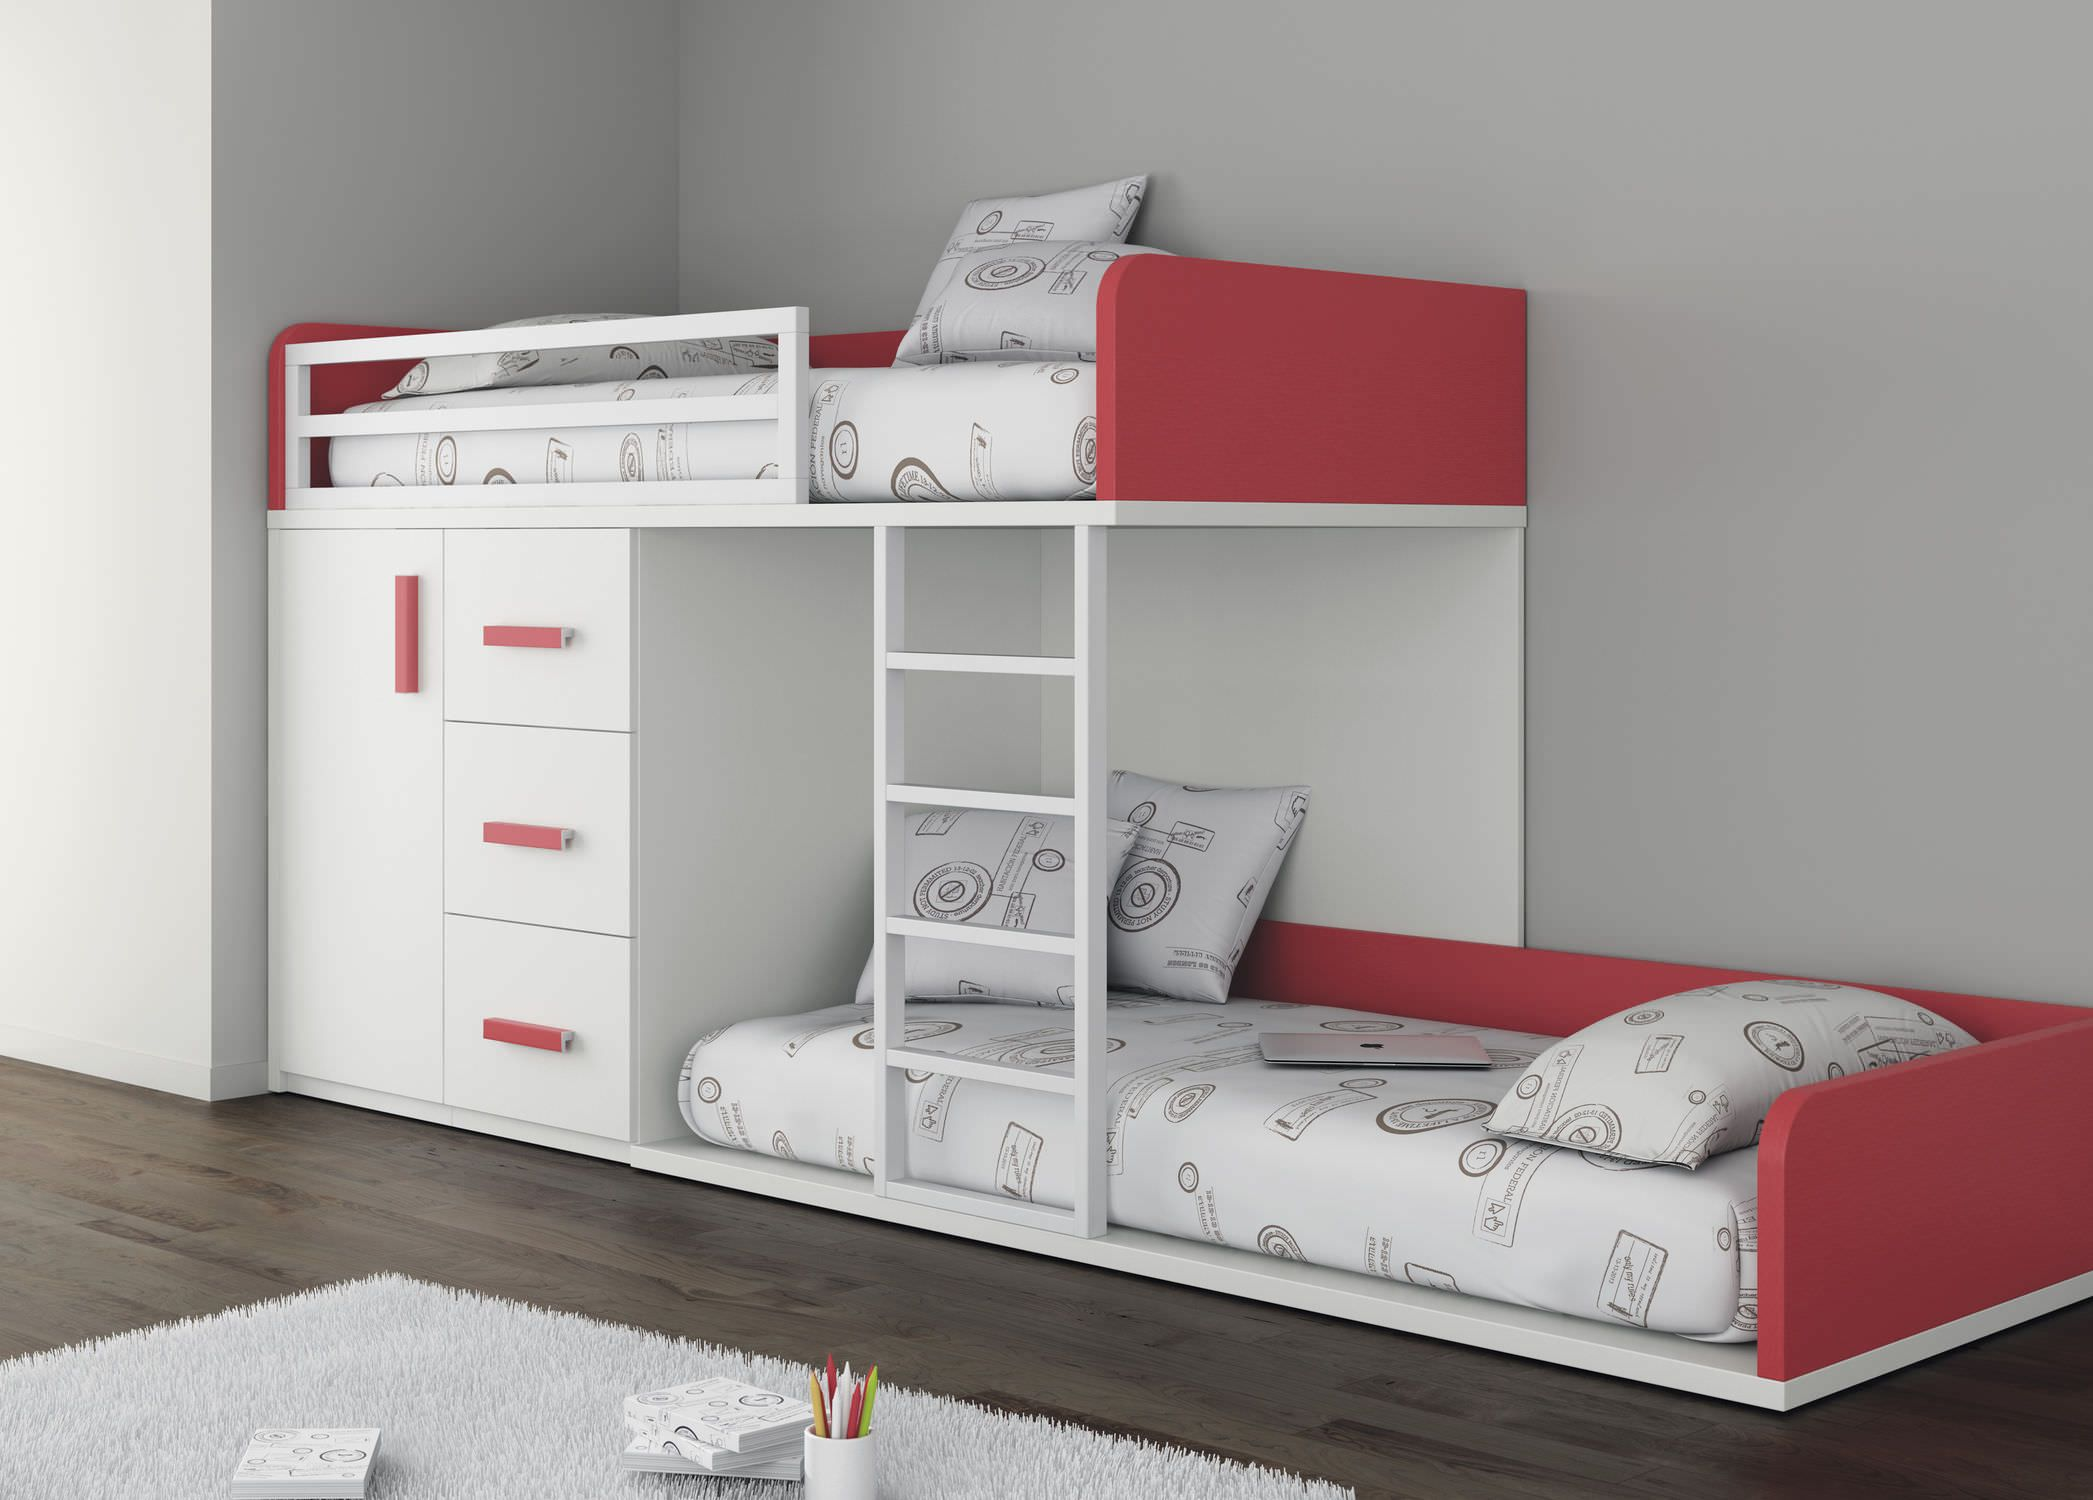 lit superpos avec rangements pour enfant fille touch 51 ros 1 sa pour la maison. Black Bedroom Furniture Sets. Home Design Ideas